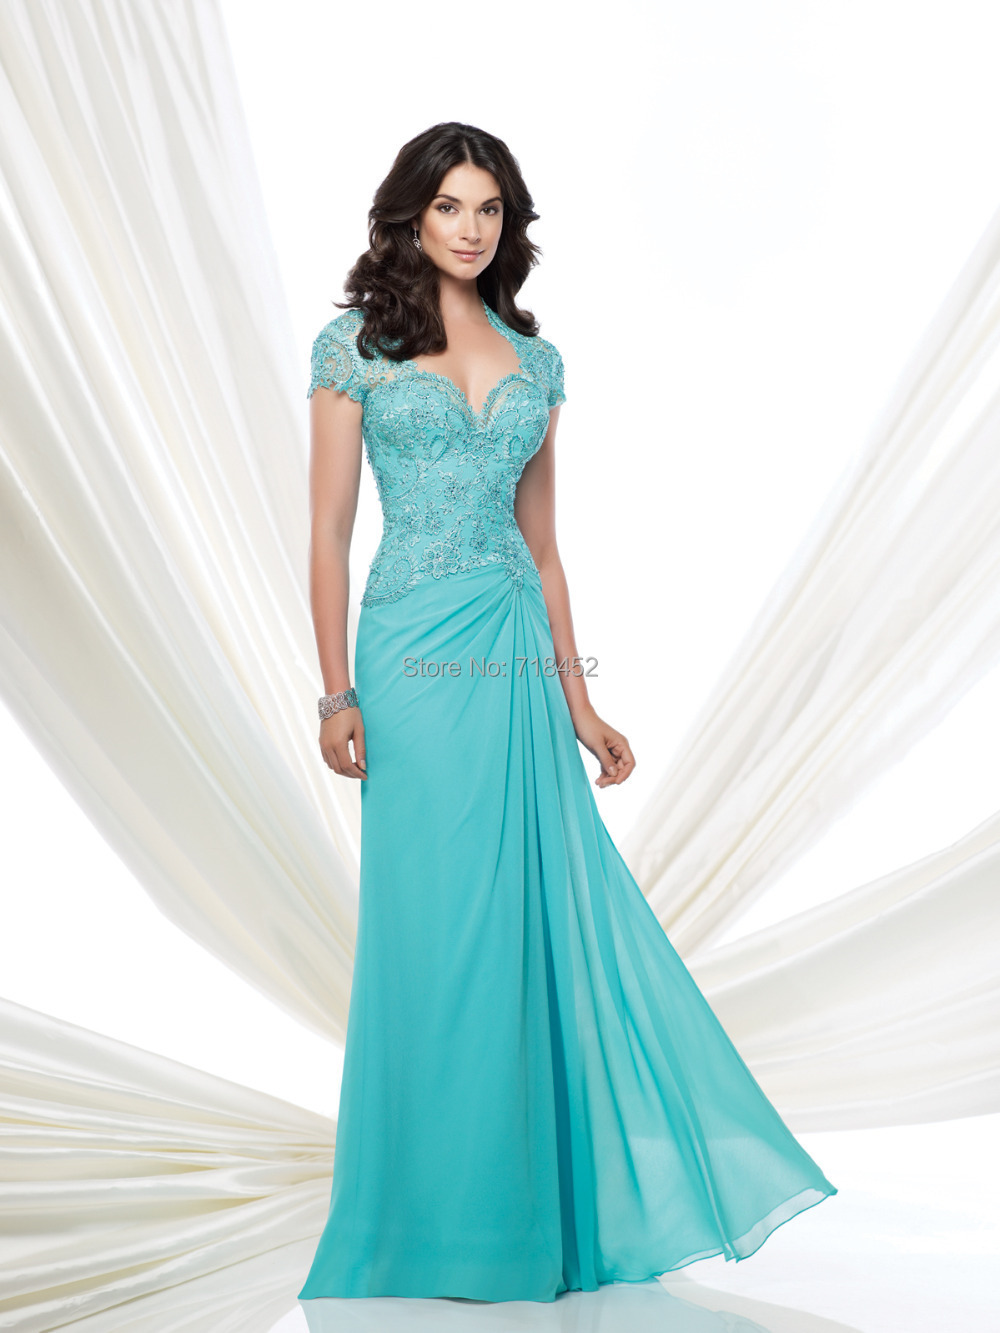 Turquoise Mother Of The Bride Dresses - Wedding Dress Ideas